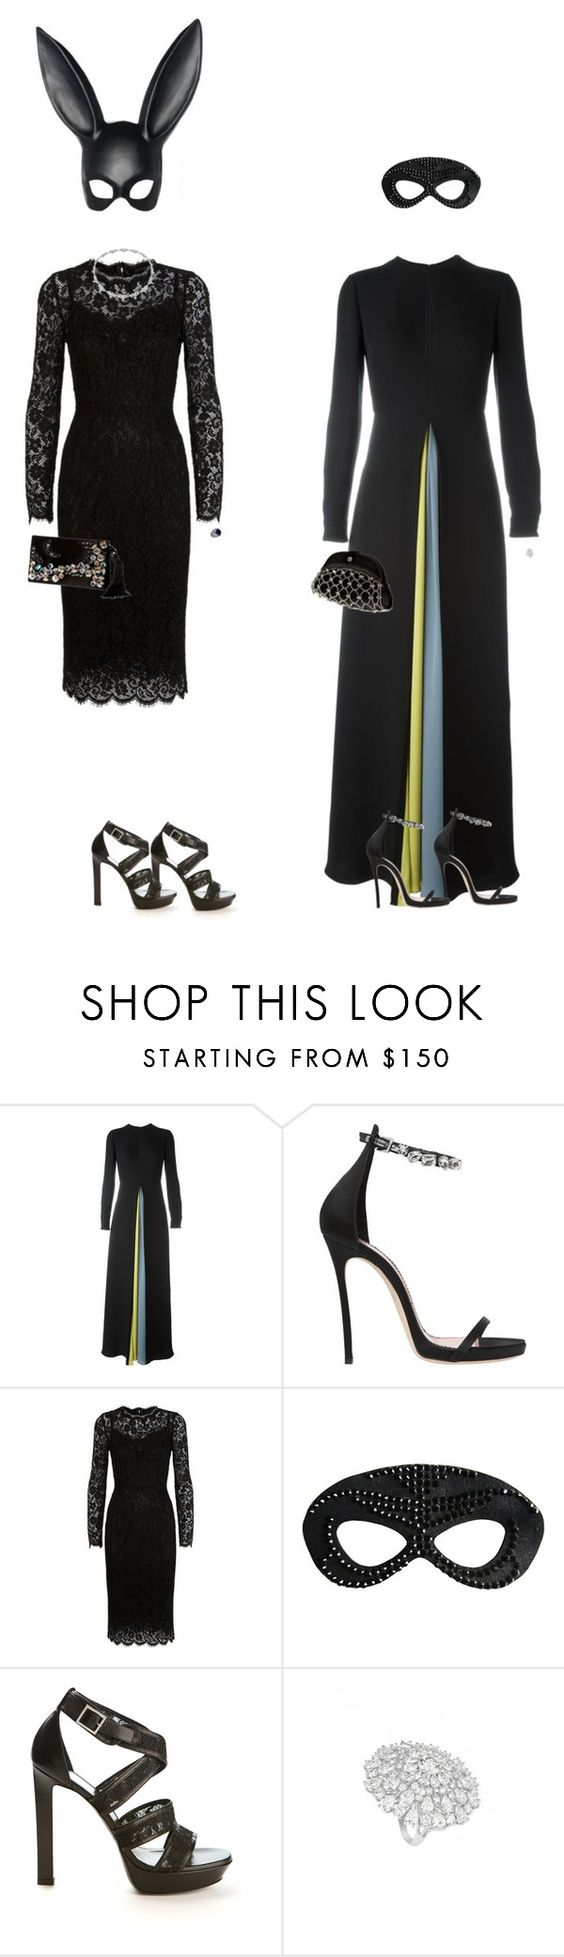 """Geen titel #11878"" by thomasj93 ❤ liked on Polyvore featuring Valentino, Dsquared2, Masquerade, Dolce&Gabbana, Heather Huey, Giorgio Armani, Yves Saint Laurent and de Grisogono"